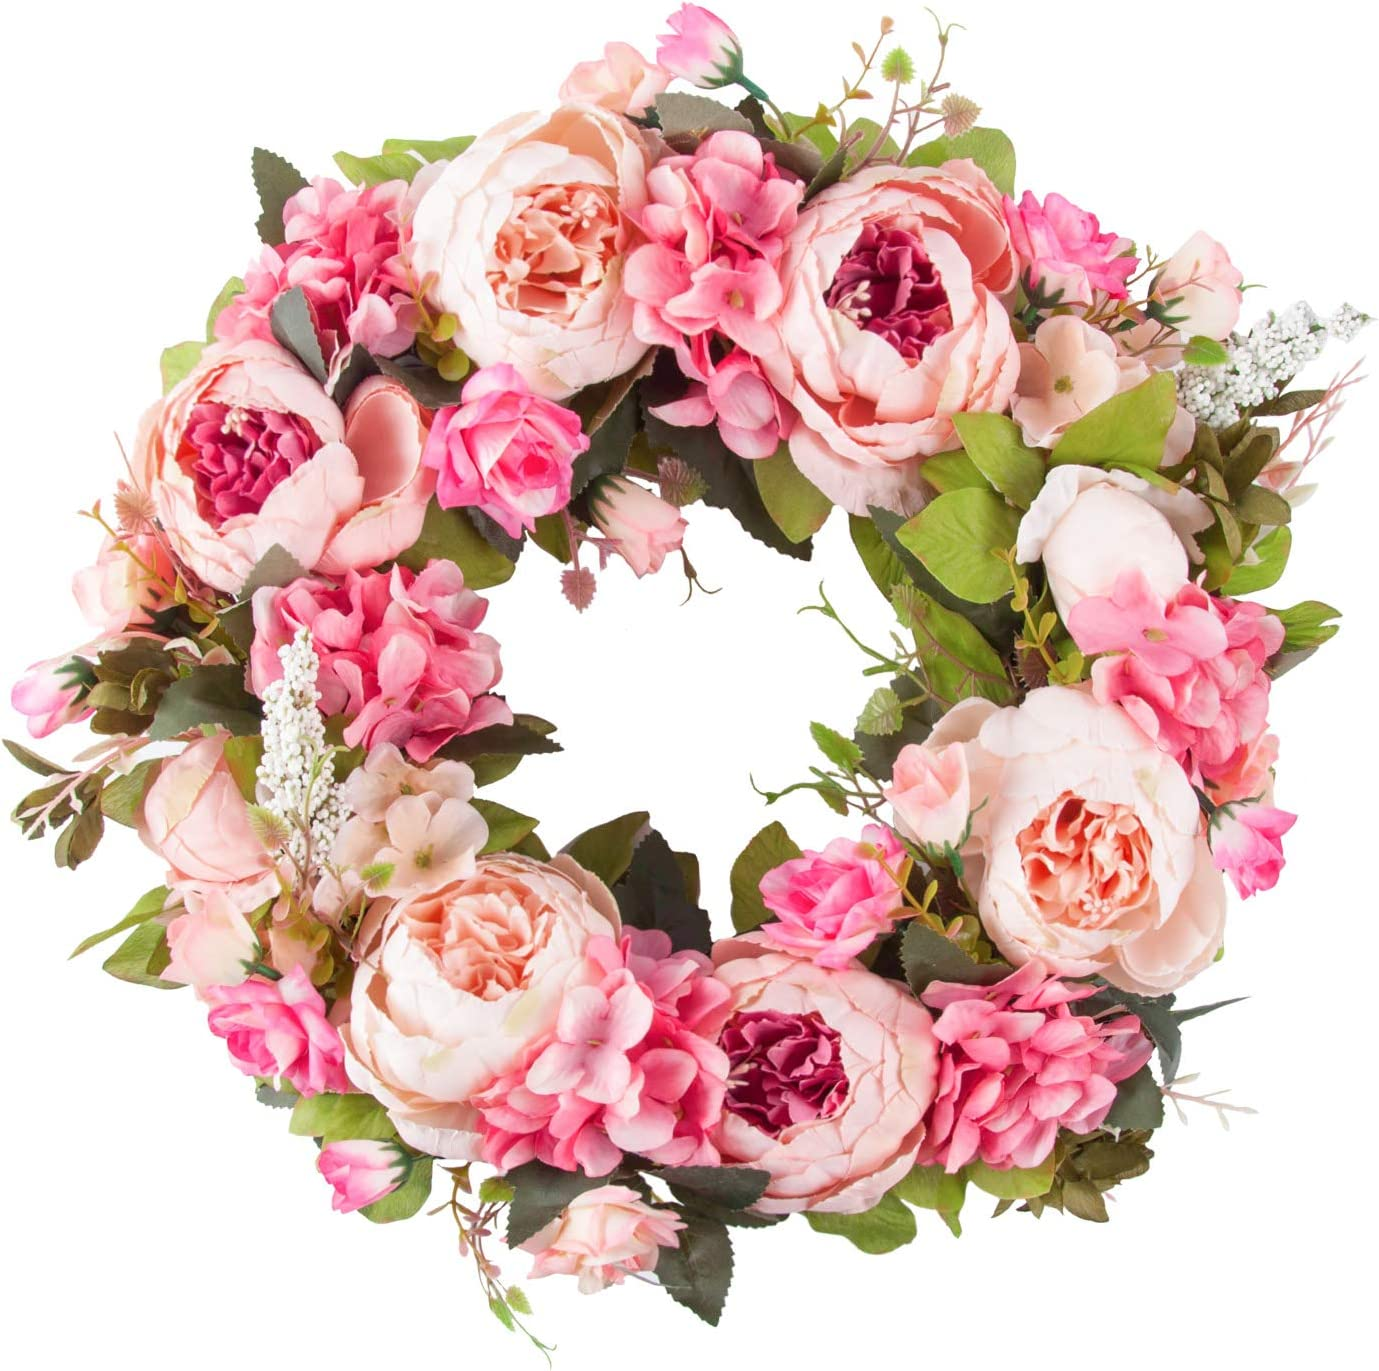 Prayer Artificial Peony Flower Wreath Door Wreath with Green Leaves Spring Wreath for Front Door,Wedding,Wall, Home Decor